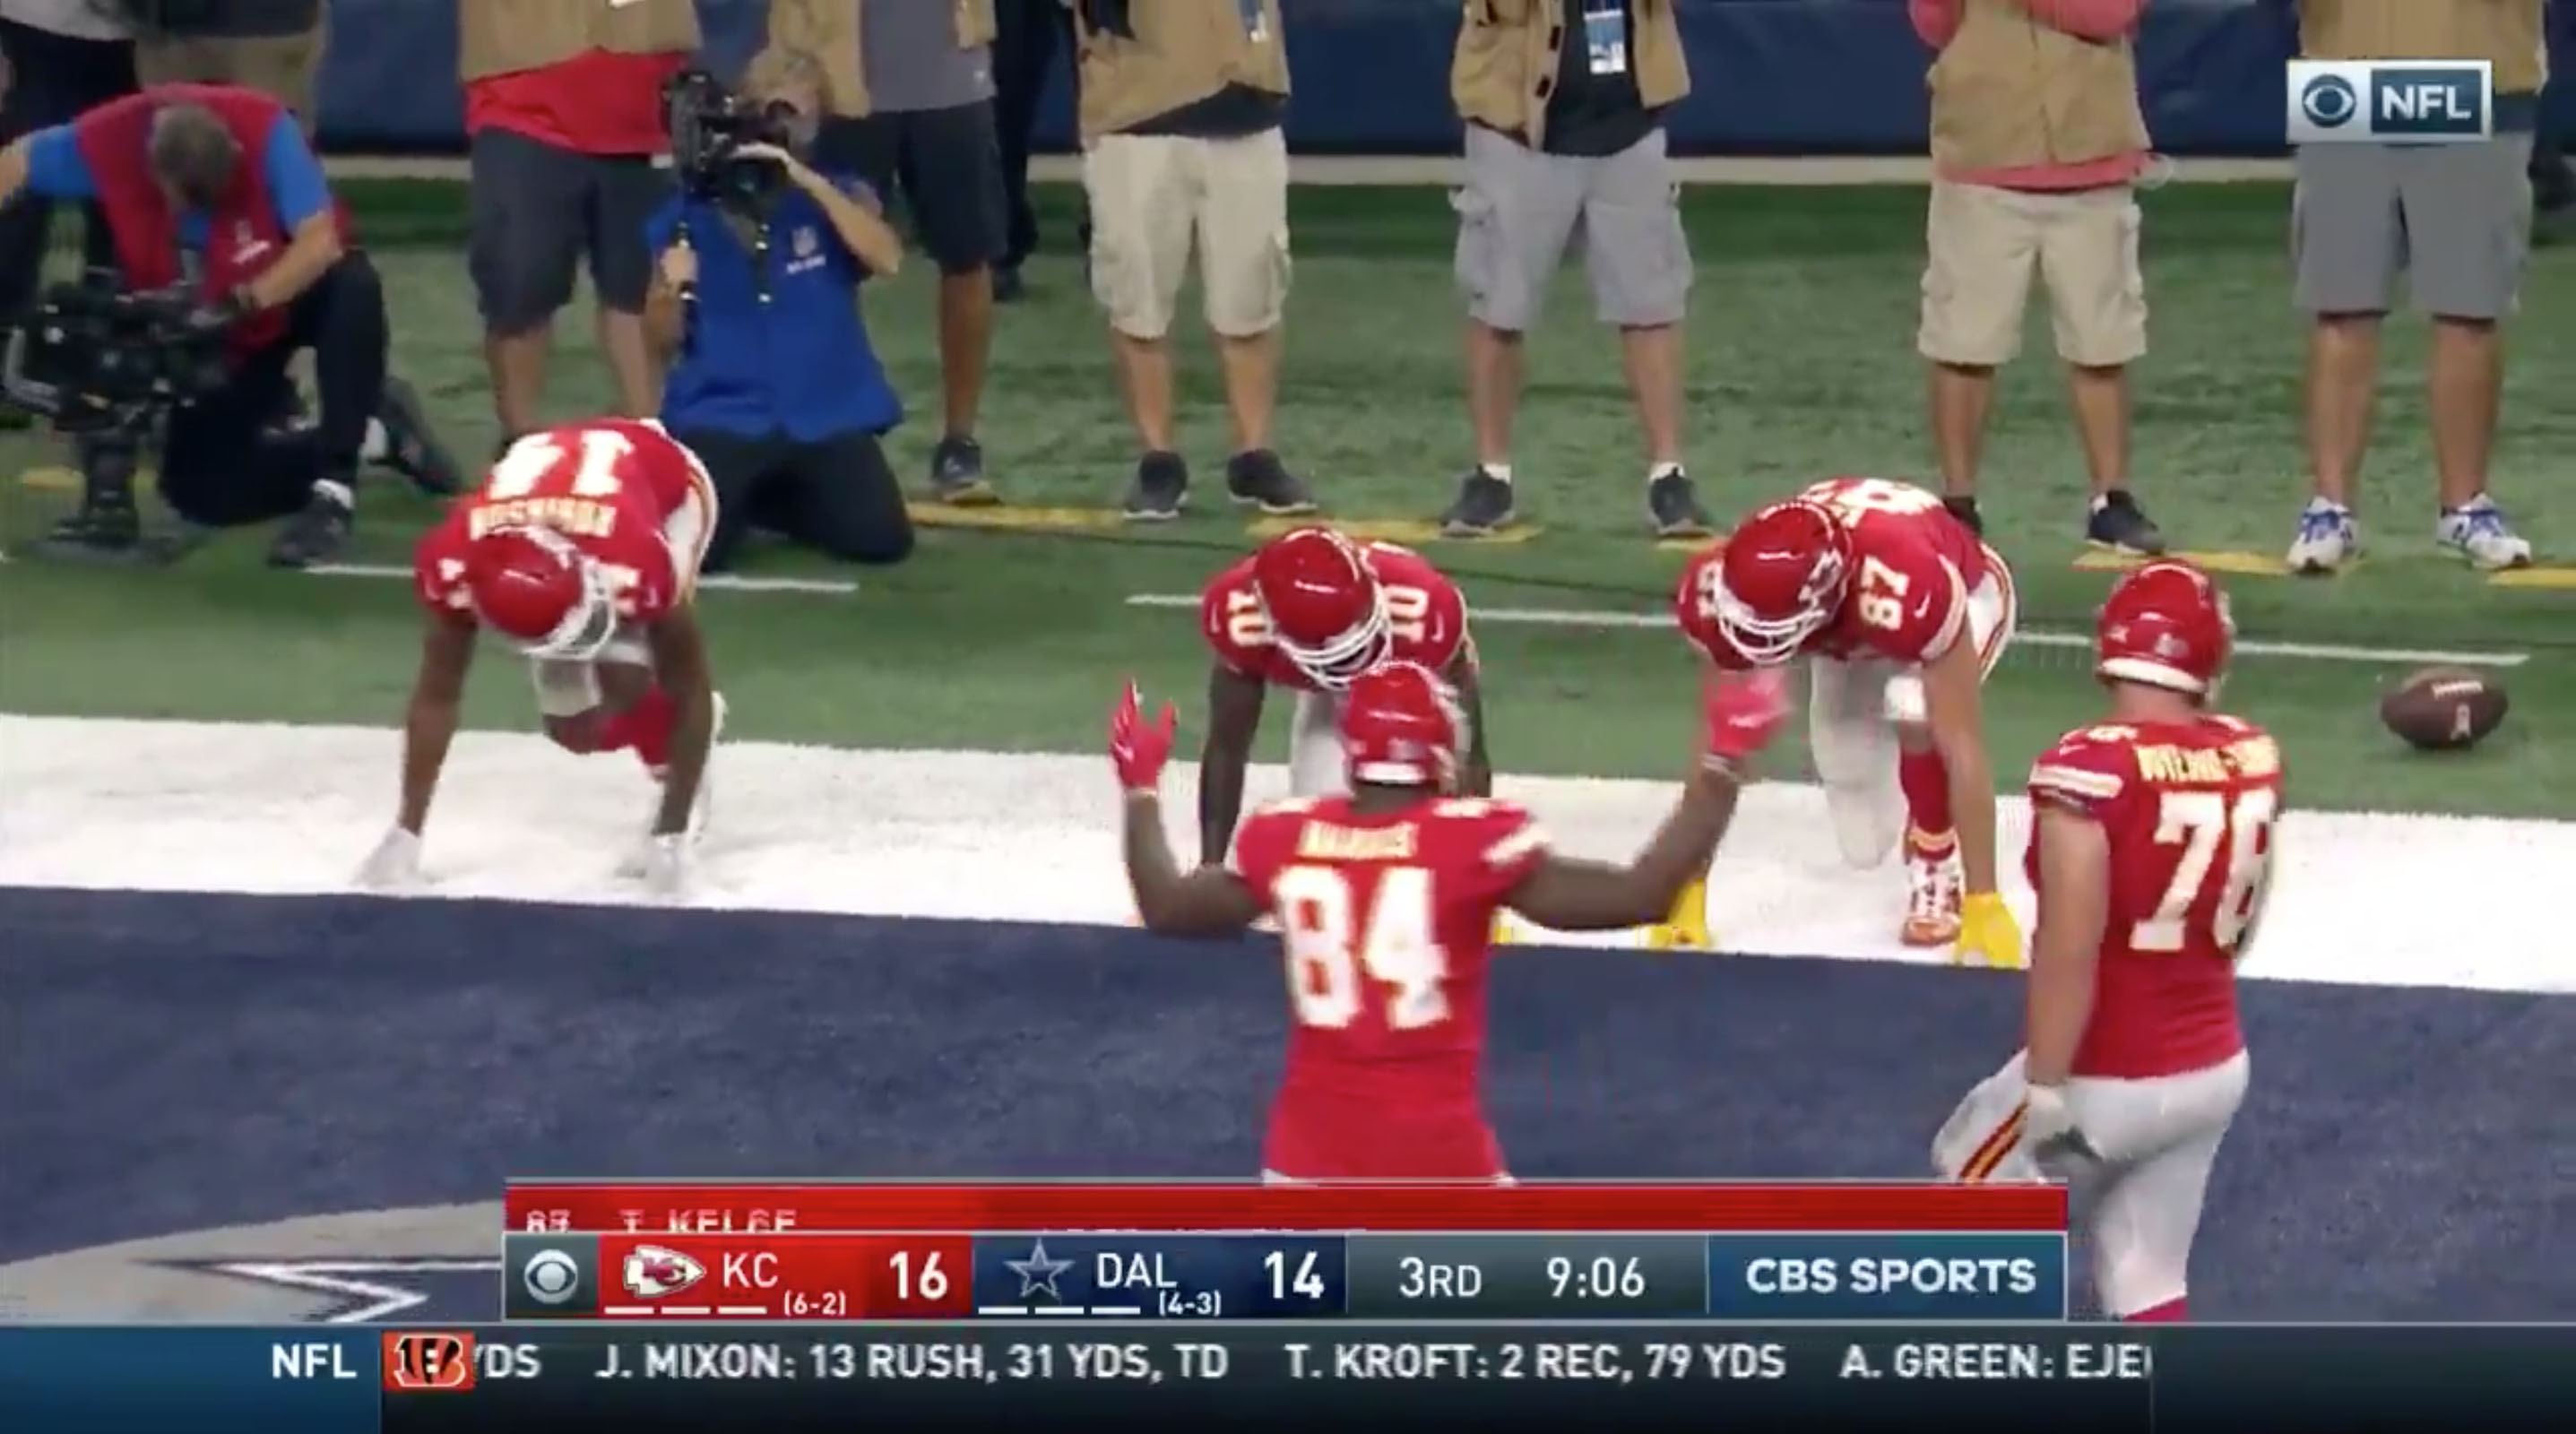 Travis Kelce celebration Chiefs TE has potato sack race video